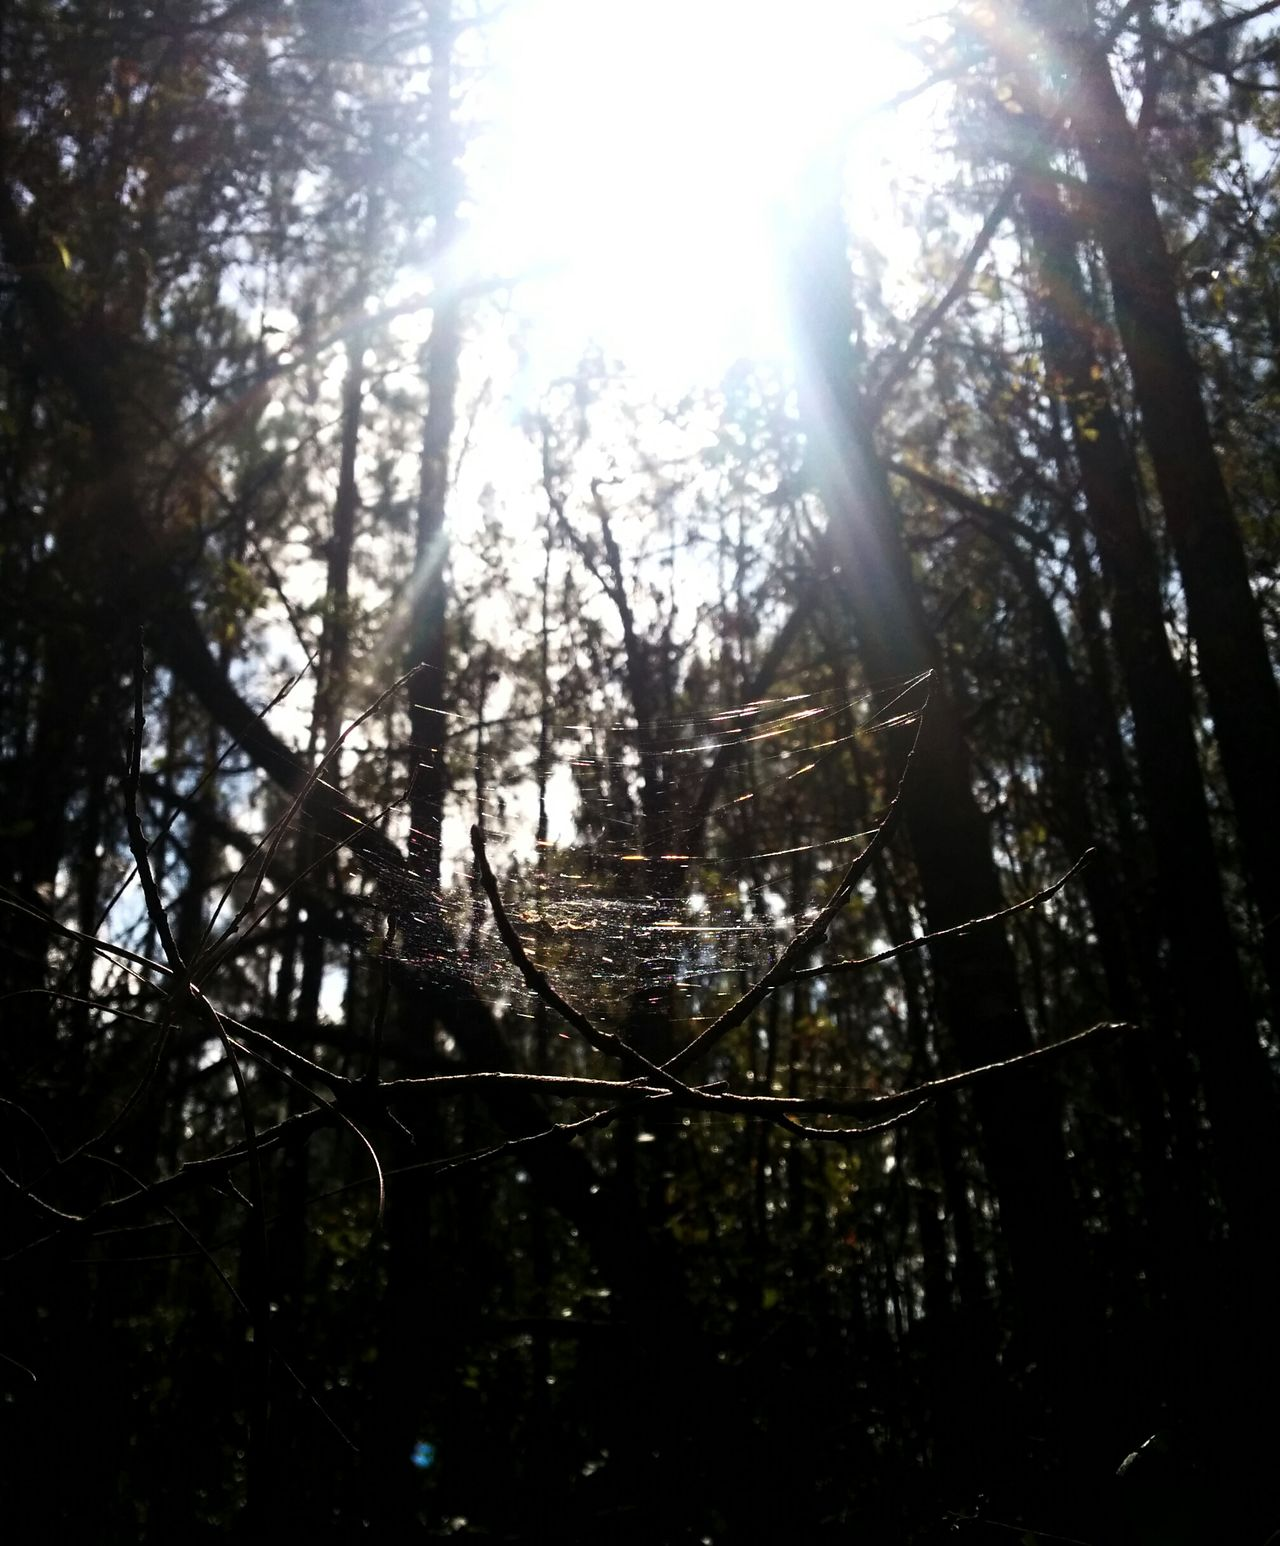 Spider Web Sunbeams Sunlight Playing With The Shadows Nature Photography